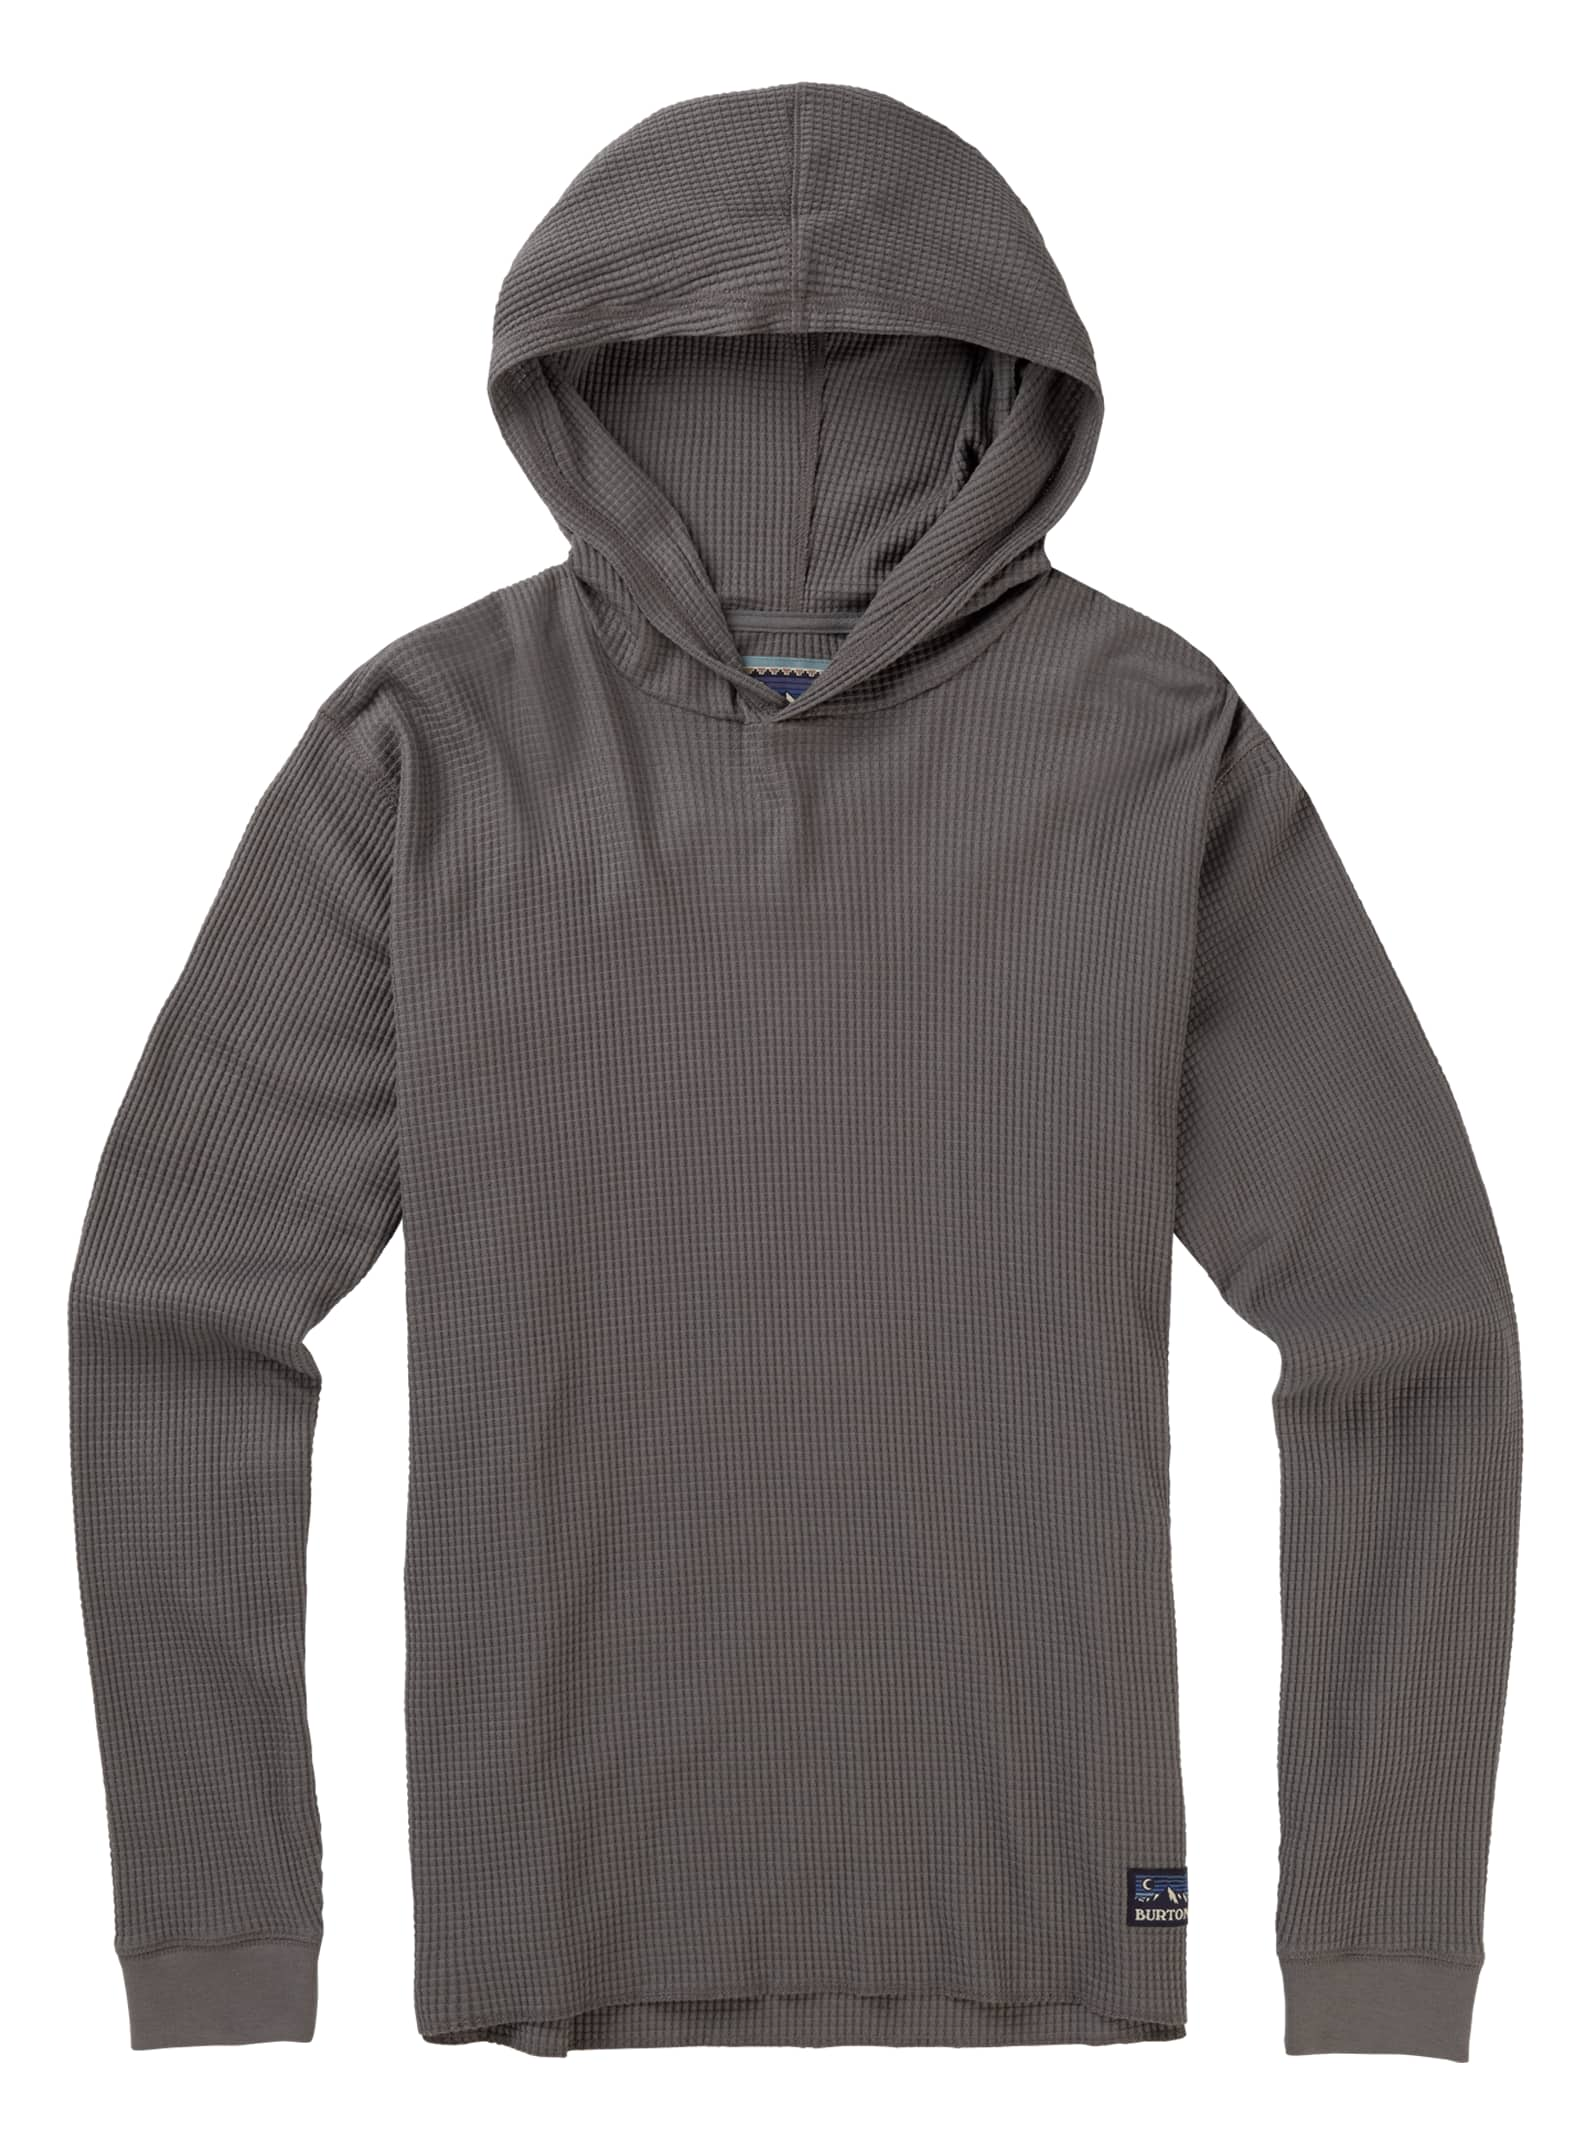 a9be4032a3d1 Men s Burton Duntime Waffle Hooded Long Sleeve T Shirt  52.46 74.95